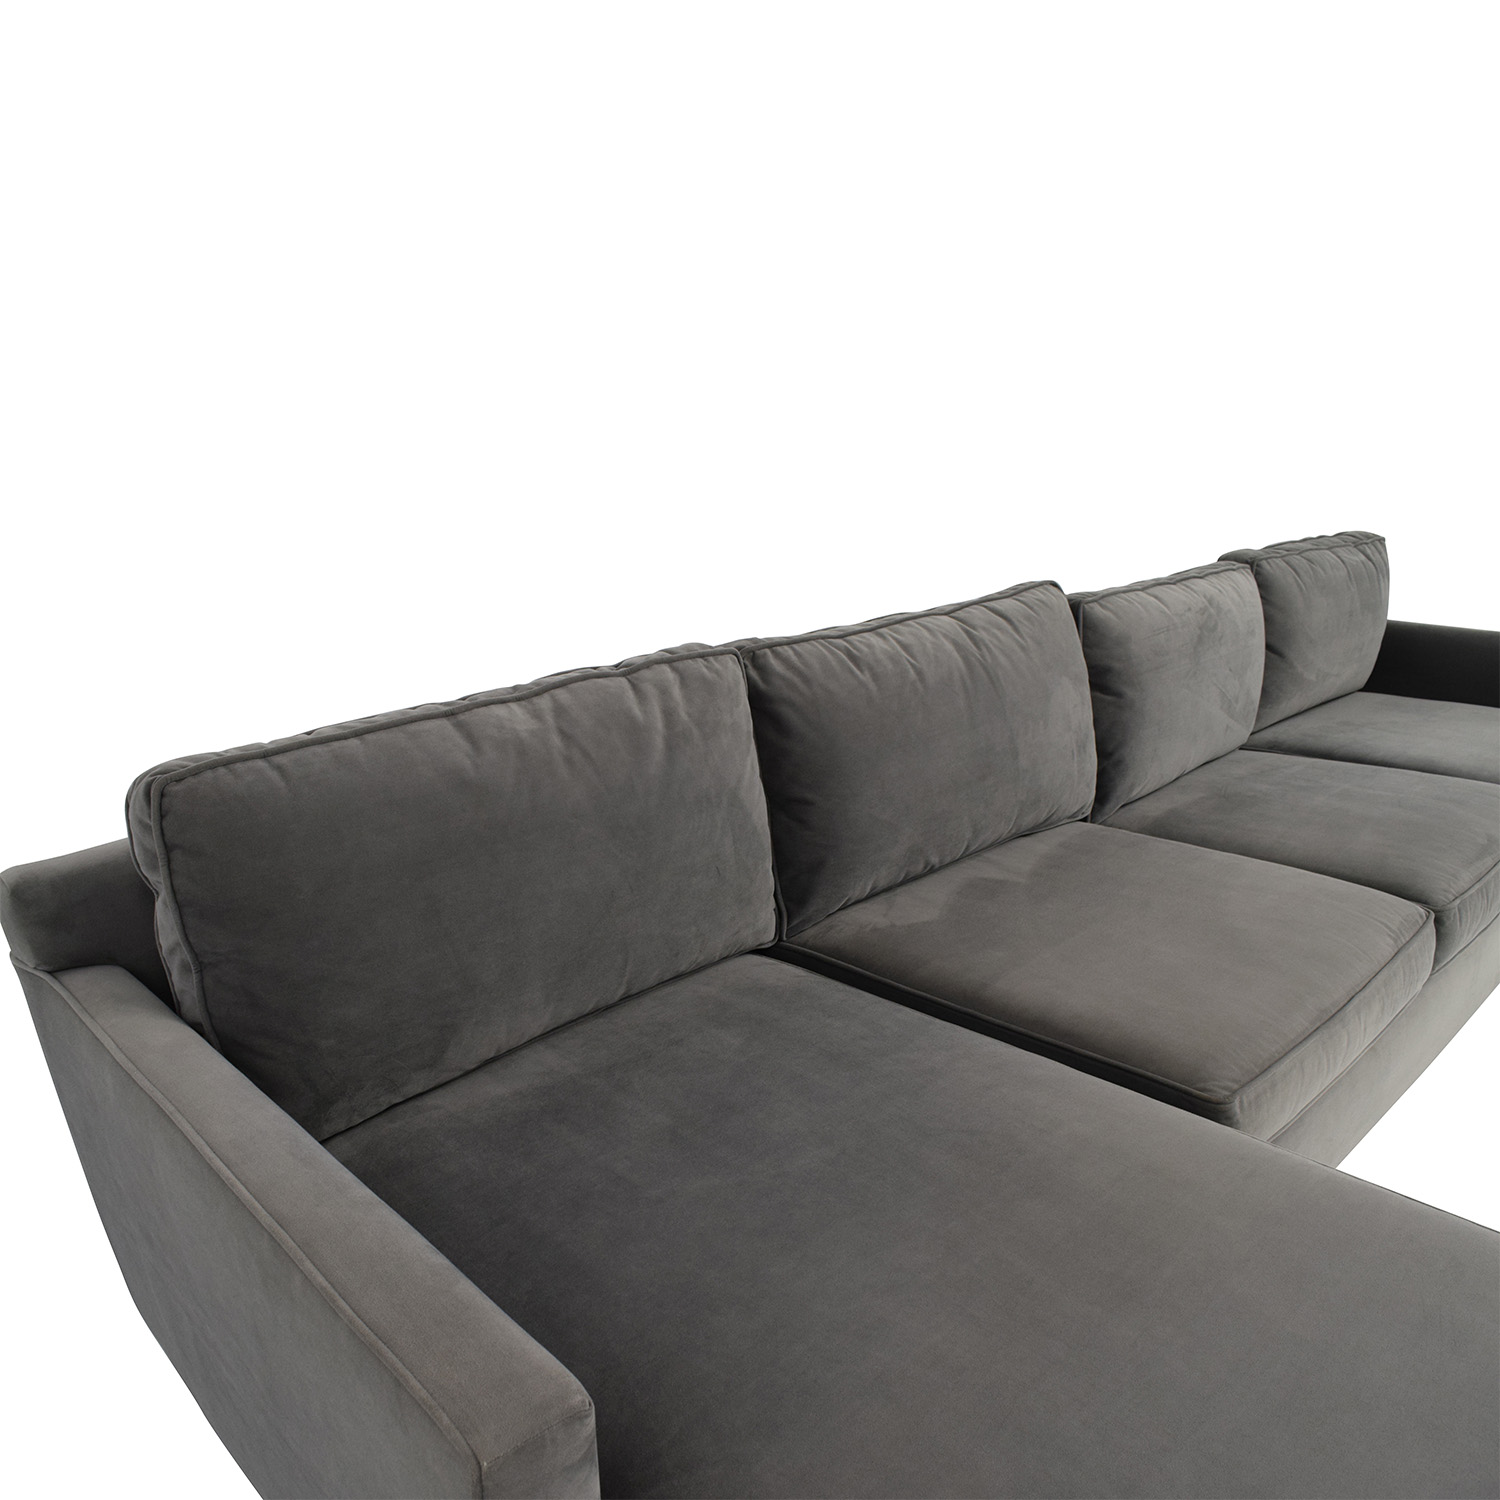 sofas free delivery macy s radley sleeper sofa 62% off - mitchell gold and bob williams ...